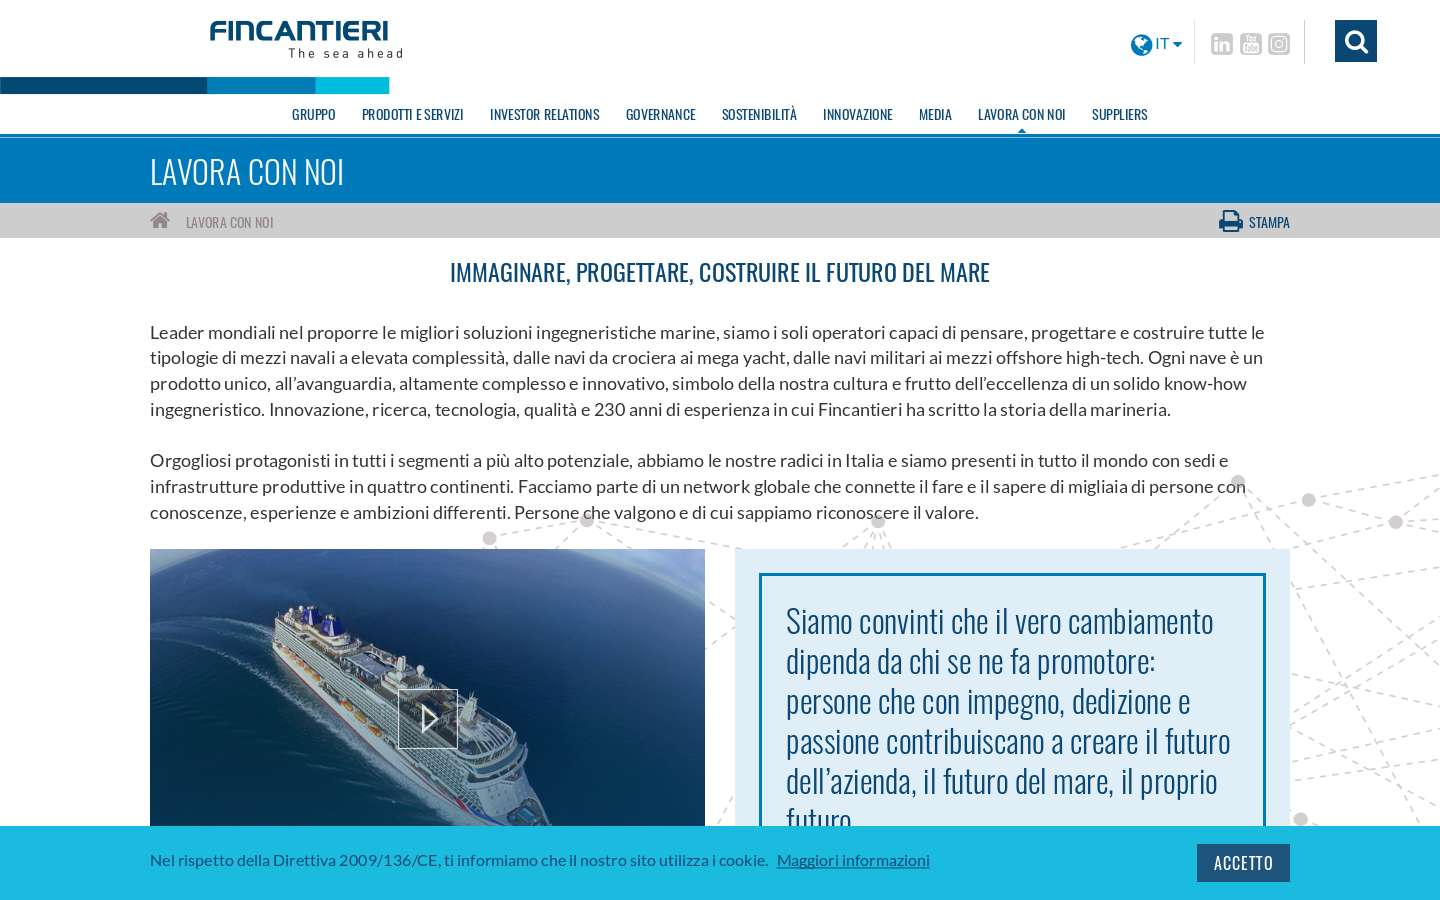 Schermata https://www.fincantieri.com/it/